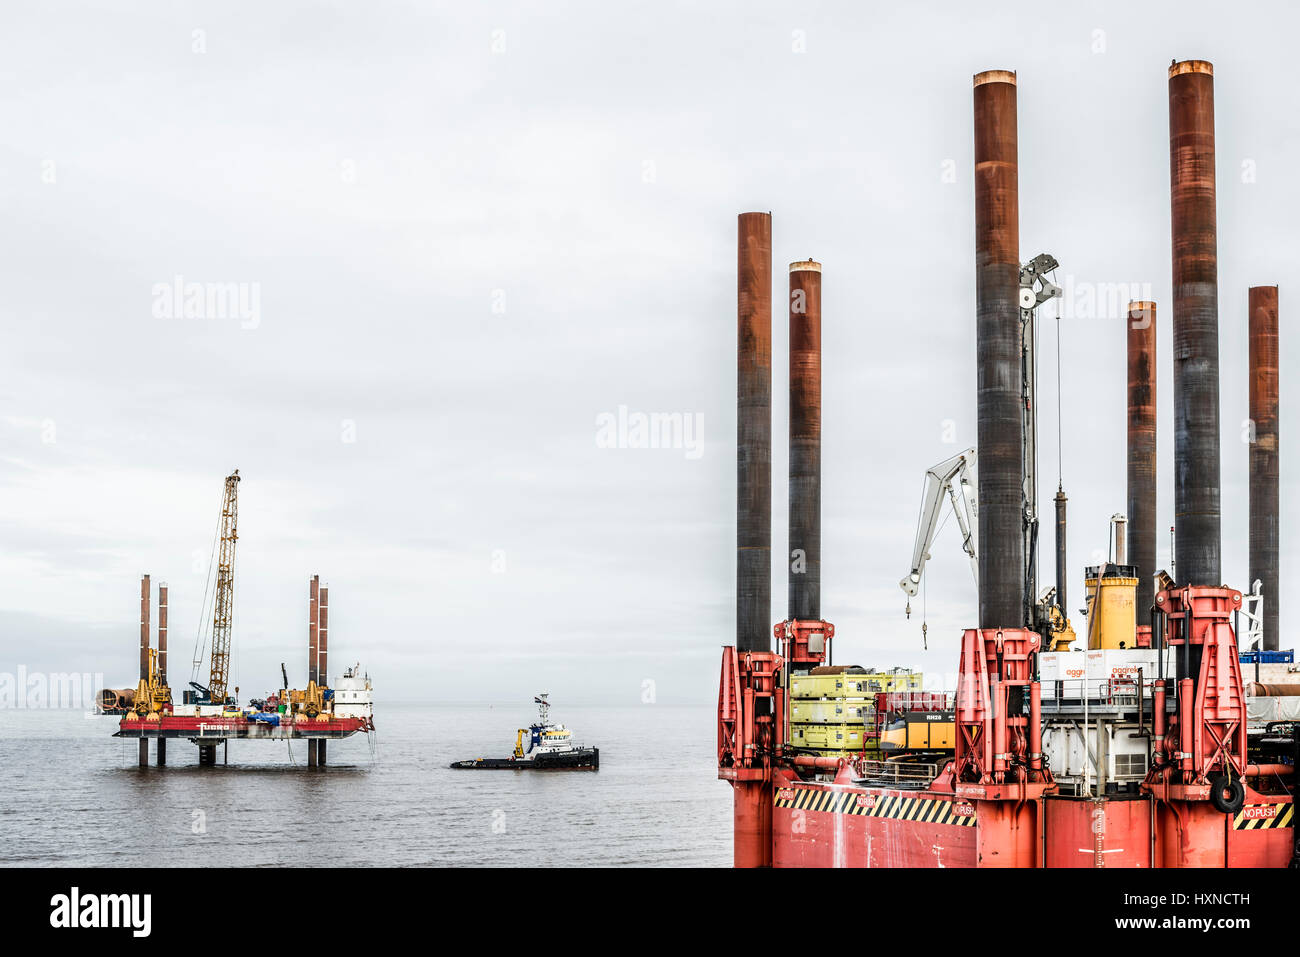 Offshore rigs and boat in the Bristol channel,druring the construction of Hinhley C power station. - Stock Image